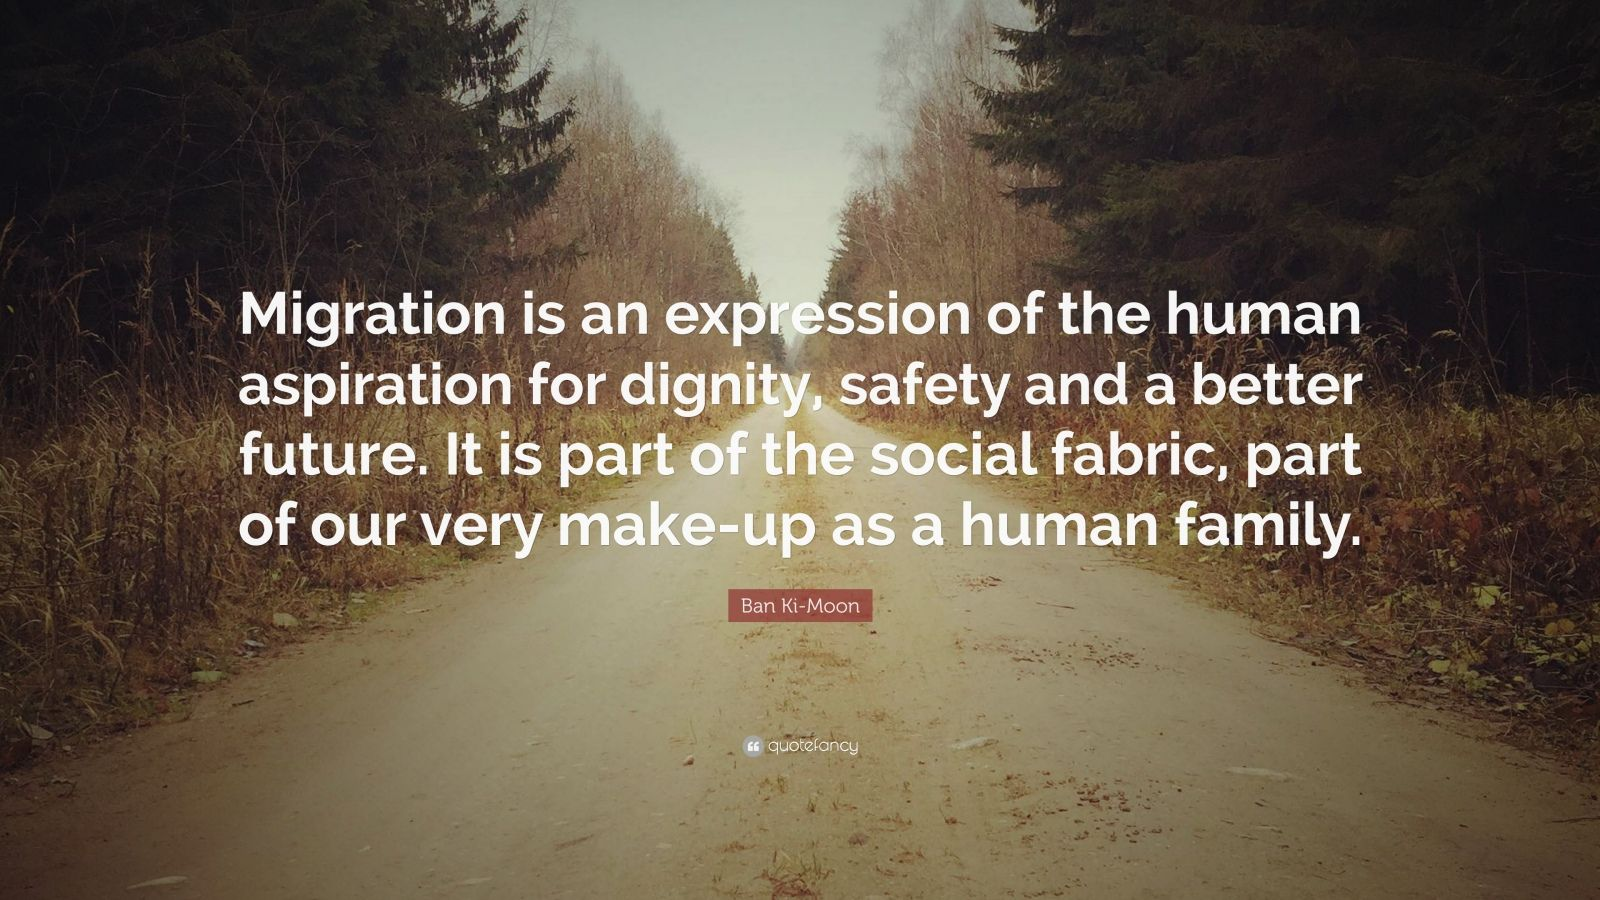 Steve Jobs Wallpaper Quotes Ban Ki Moon Quote Migration Is An Expression Of The